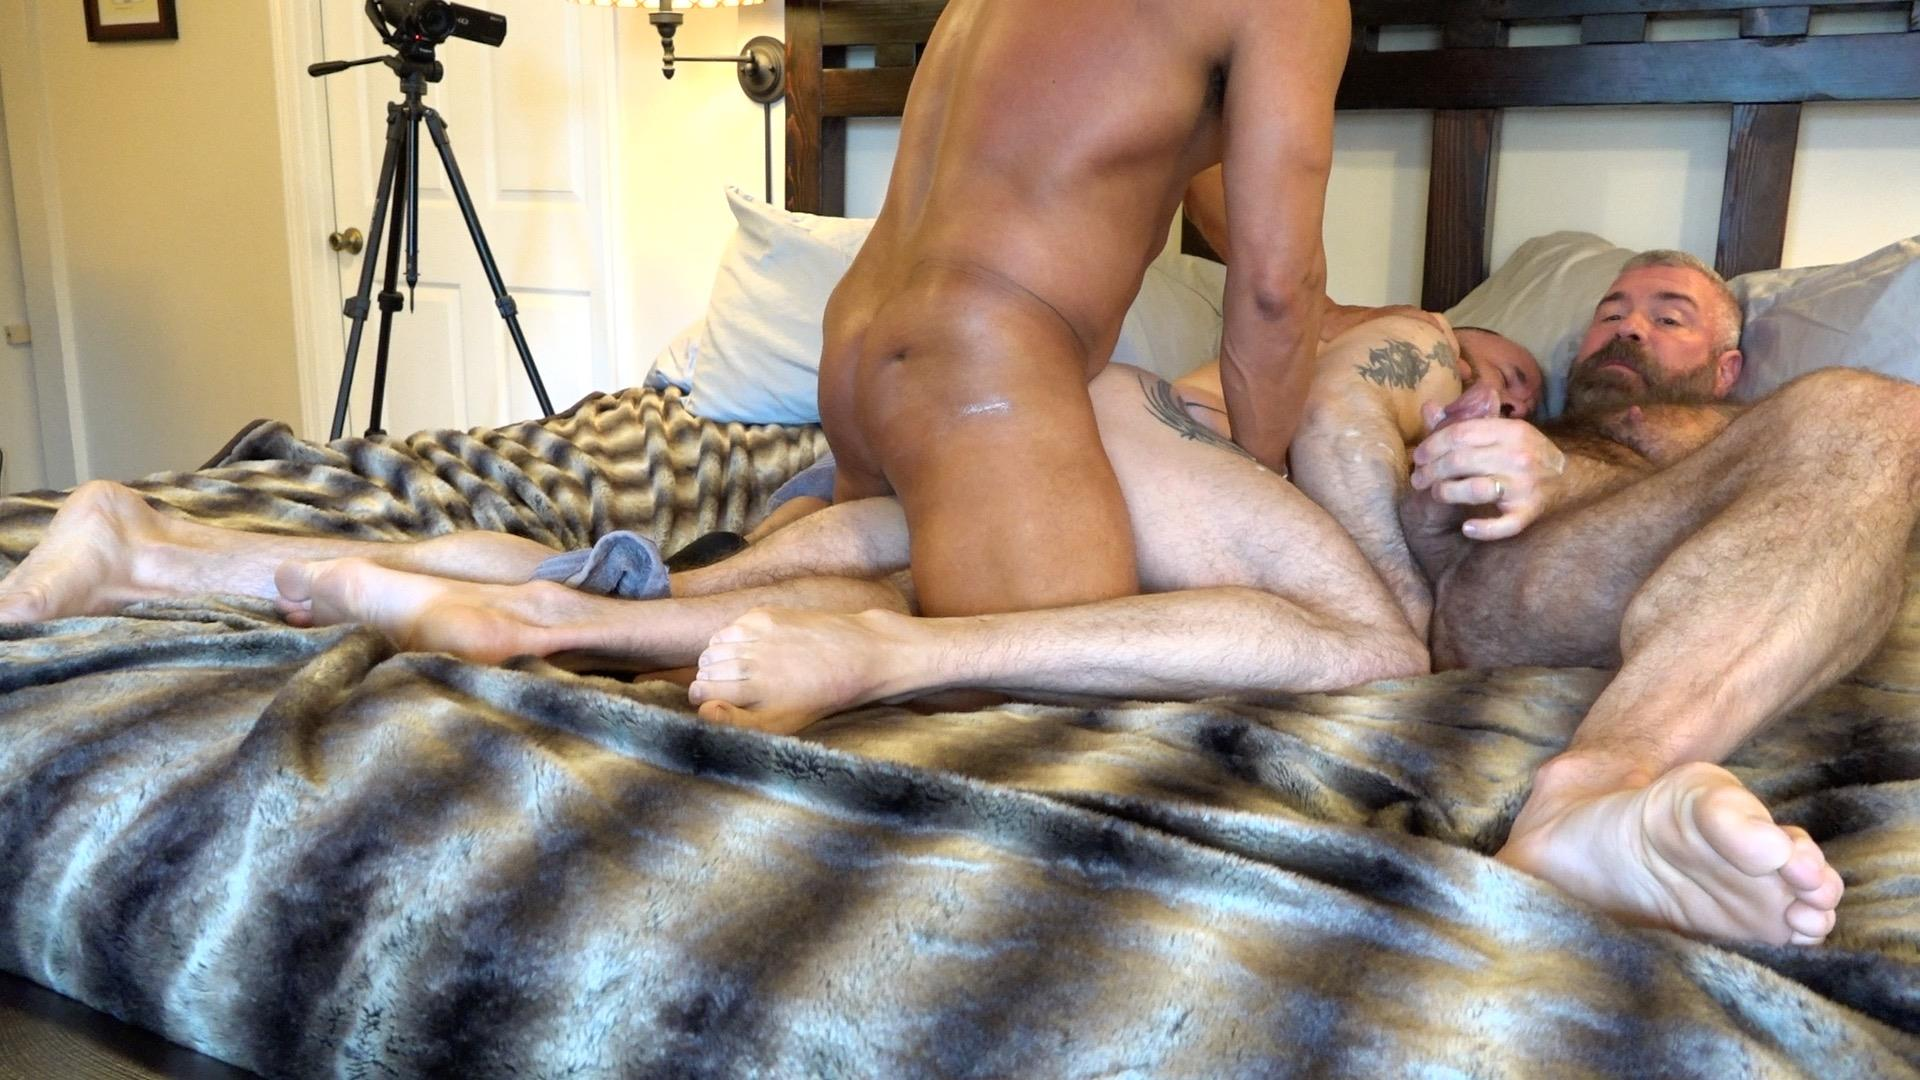 Muscle-Bear-Porn-Liam-Angell-and-Will-Angell-Daddy-Breeding-His-Boy-Gay-Sex-Video-09 Hairy Muscle Bear Daddy Will Angell Shares His Boy With A Hot Latino Top